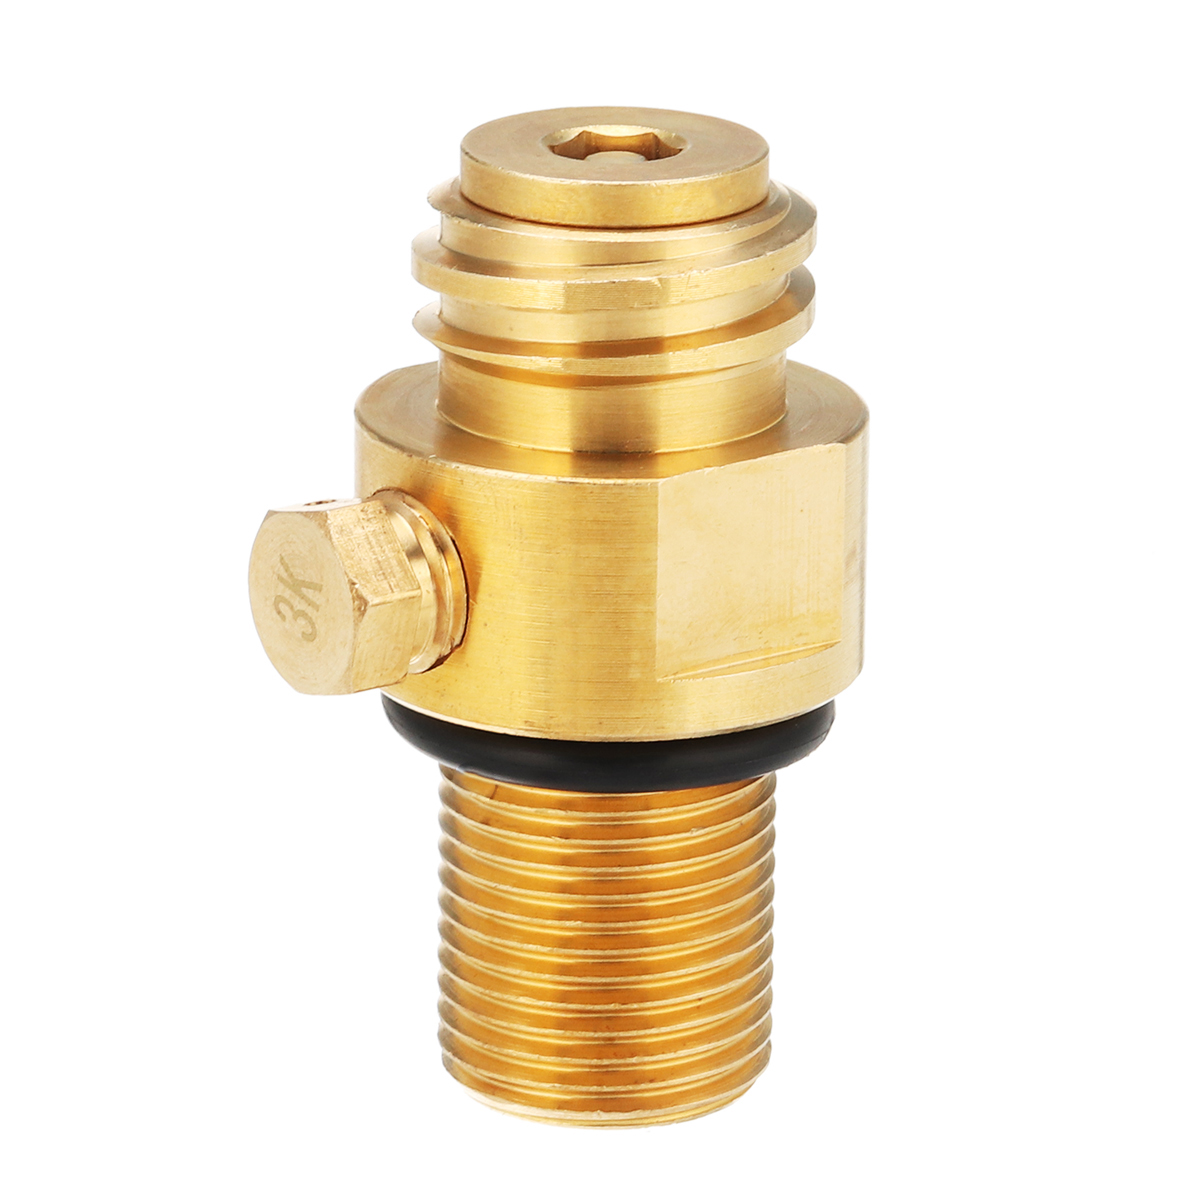 M18*1.5 Thread Replacement Valve CO2 Tank Brass Pin Val